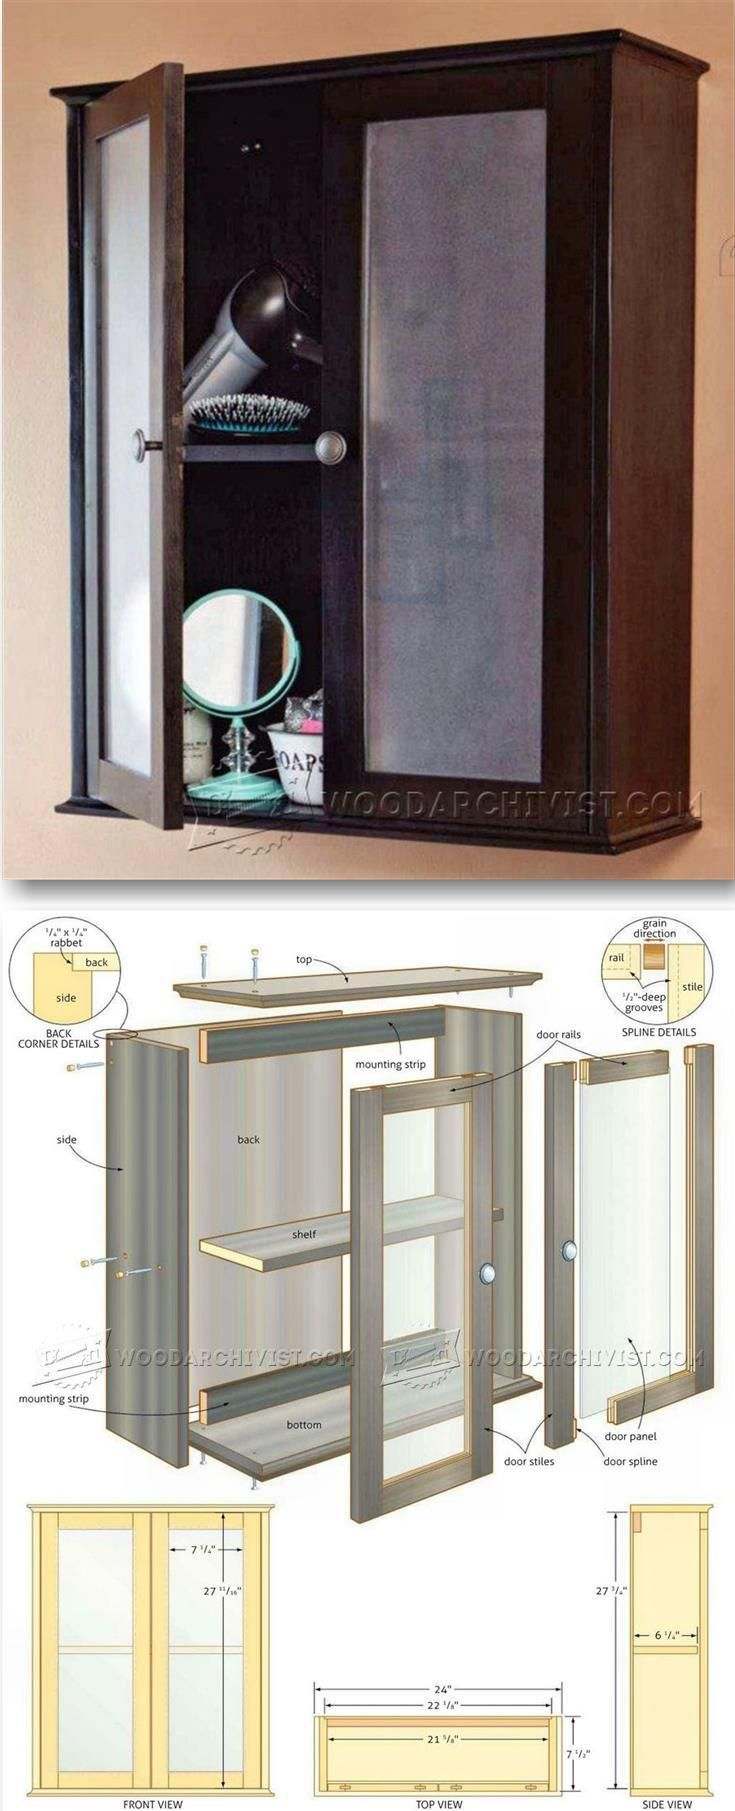 Bathroom Wall Cabinet Plans - Furniture Plans and Projects | WoodArchivist.com